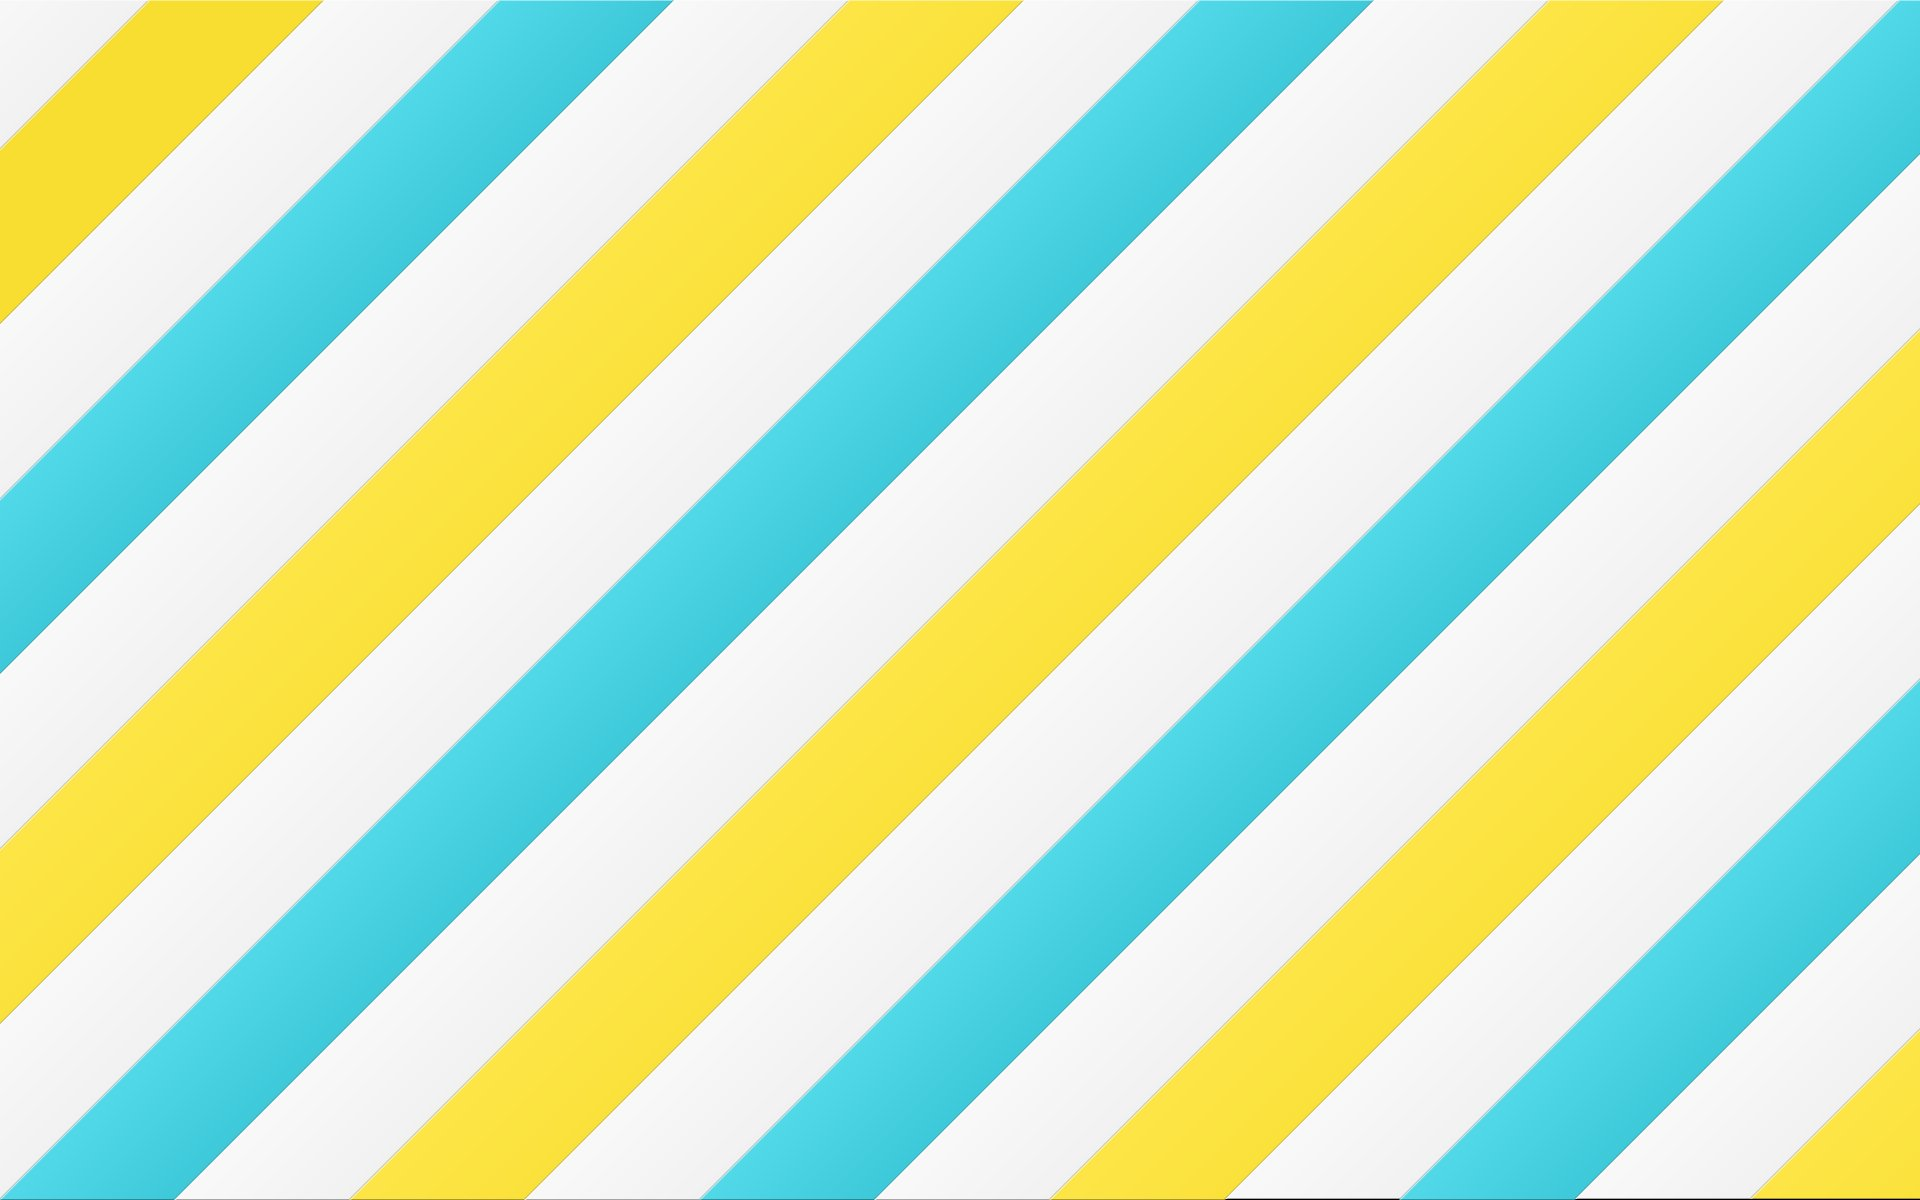 Free Download Yellow Blue Wallpapers And Background Images Stmednet 1920x1200 For Your Desktop Mobile Tablet Explore 28 Blue And Yellow Abstract Wallpapers Blue And Yellow Abstract Wallpapers Blue And